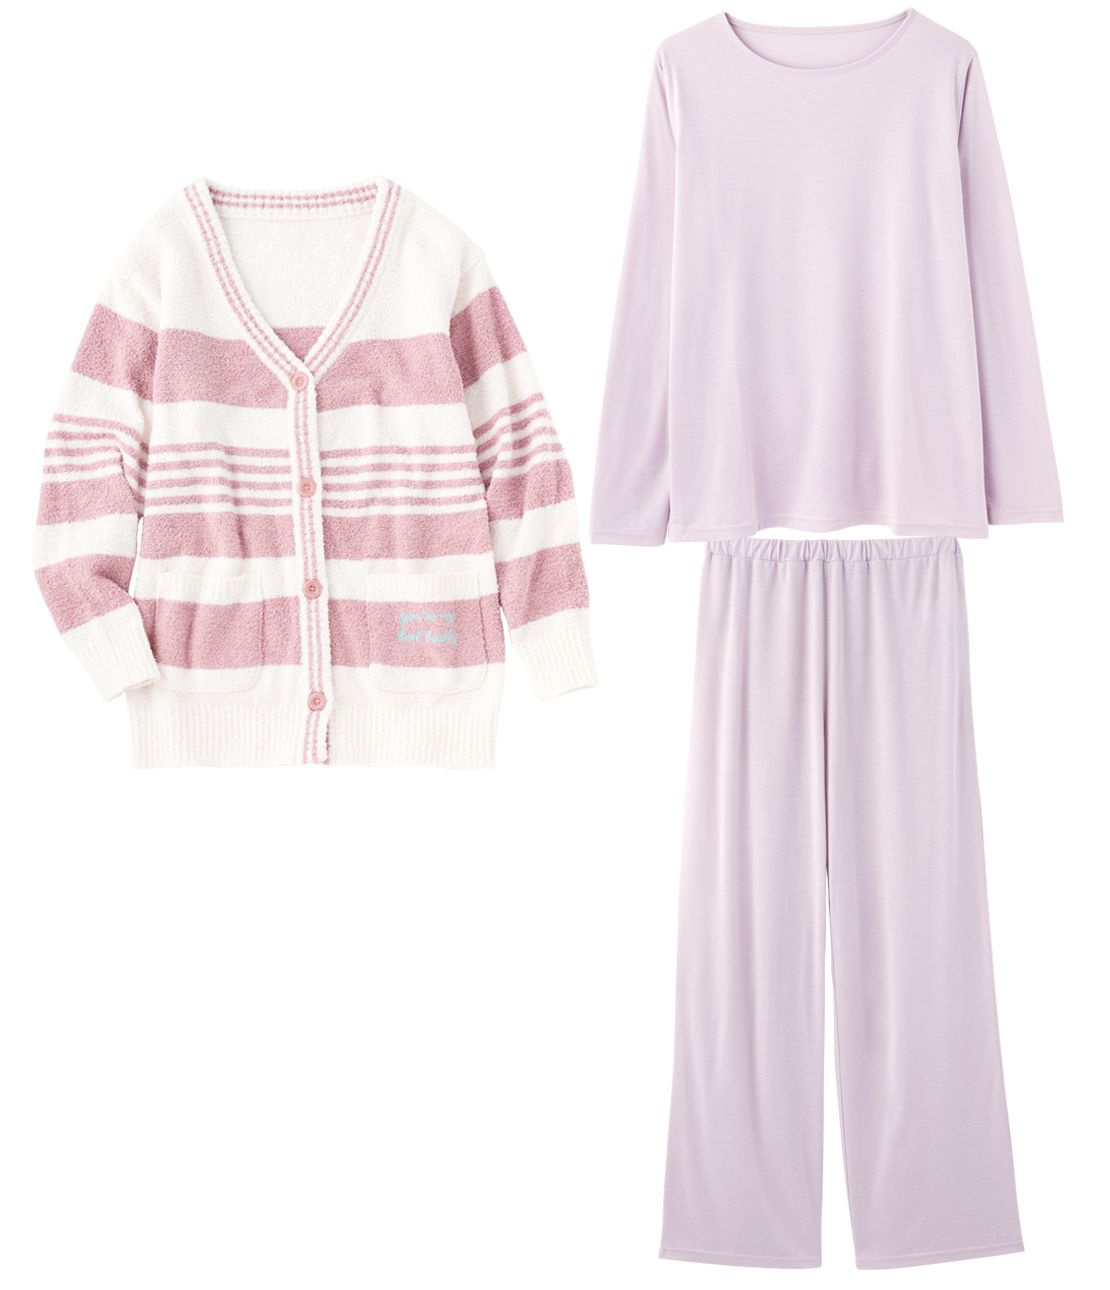 Whip Lee pajamas set